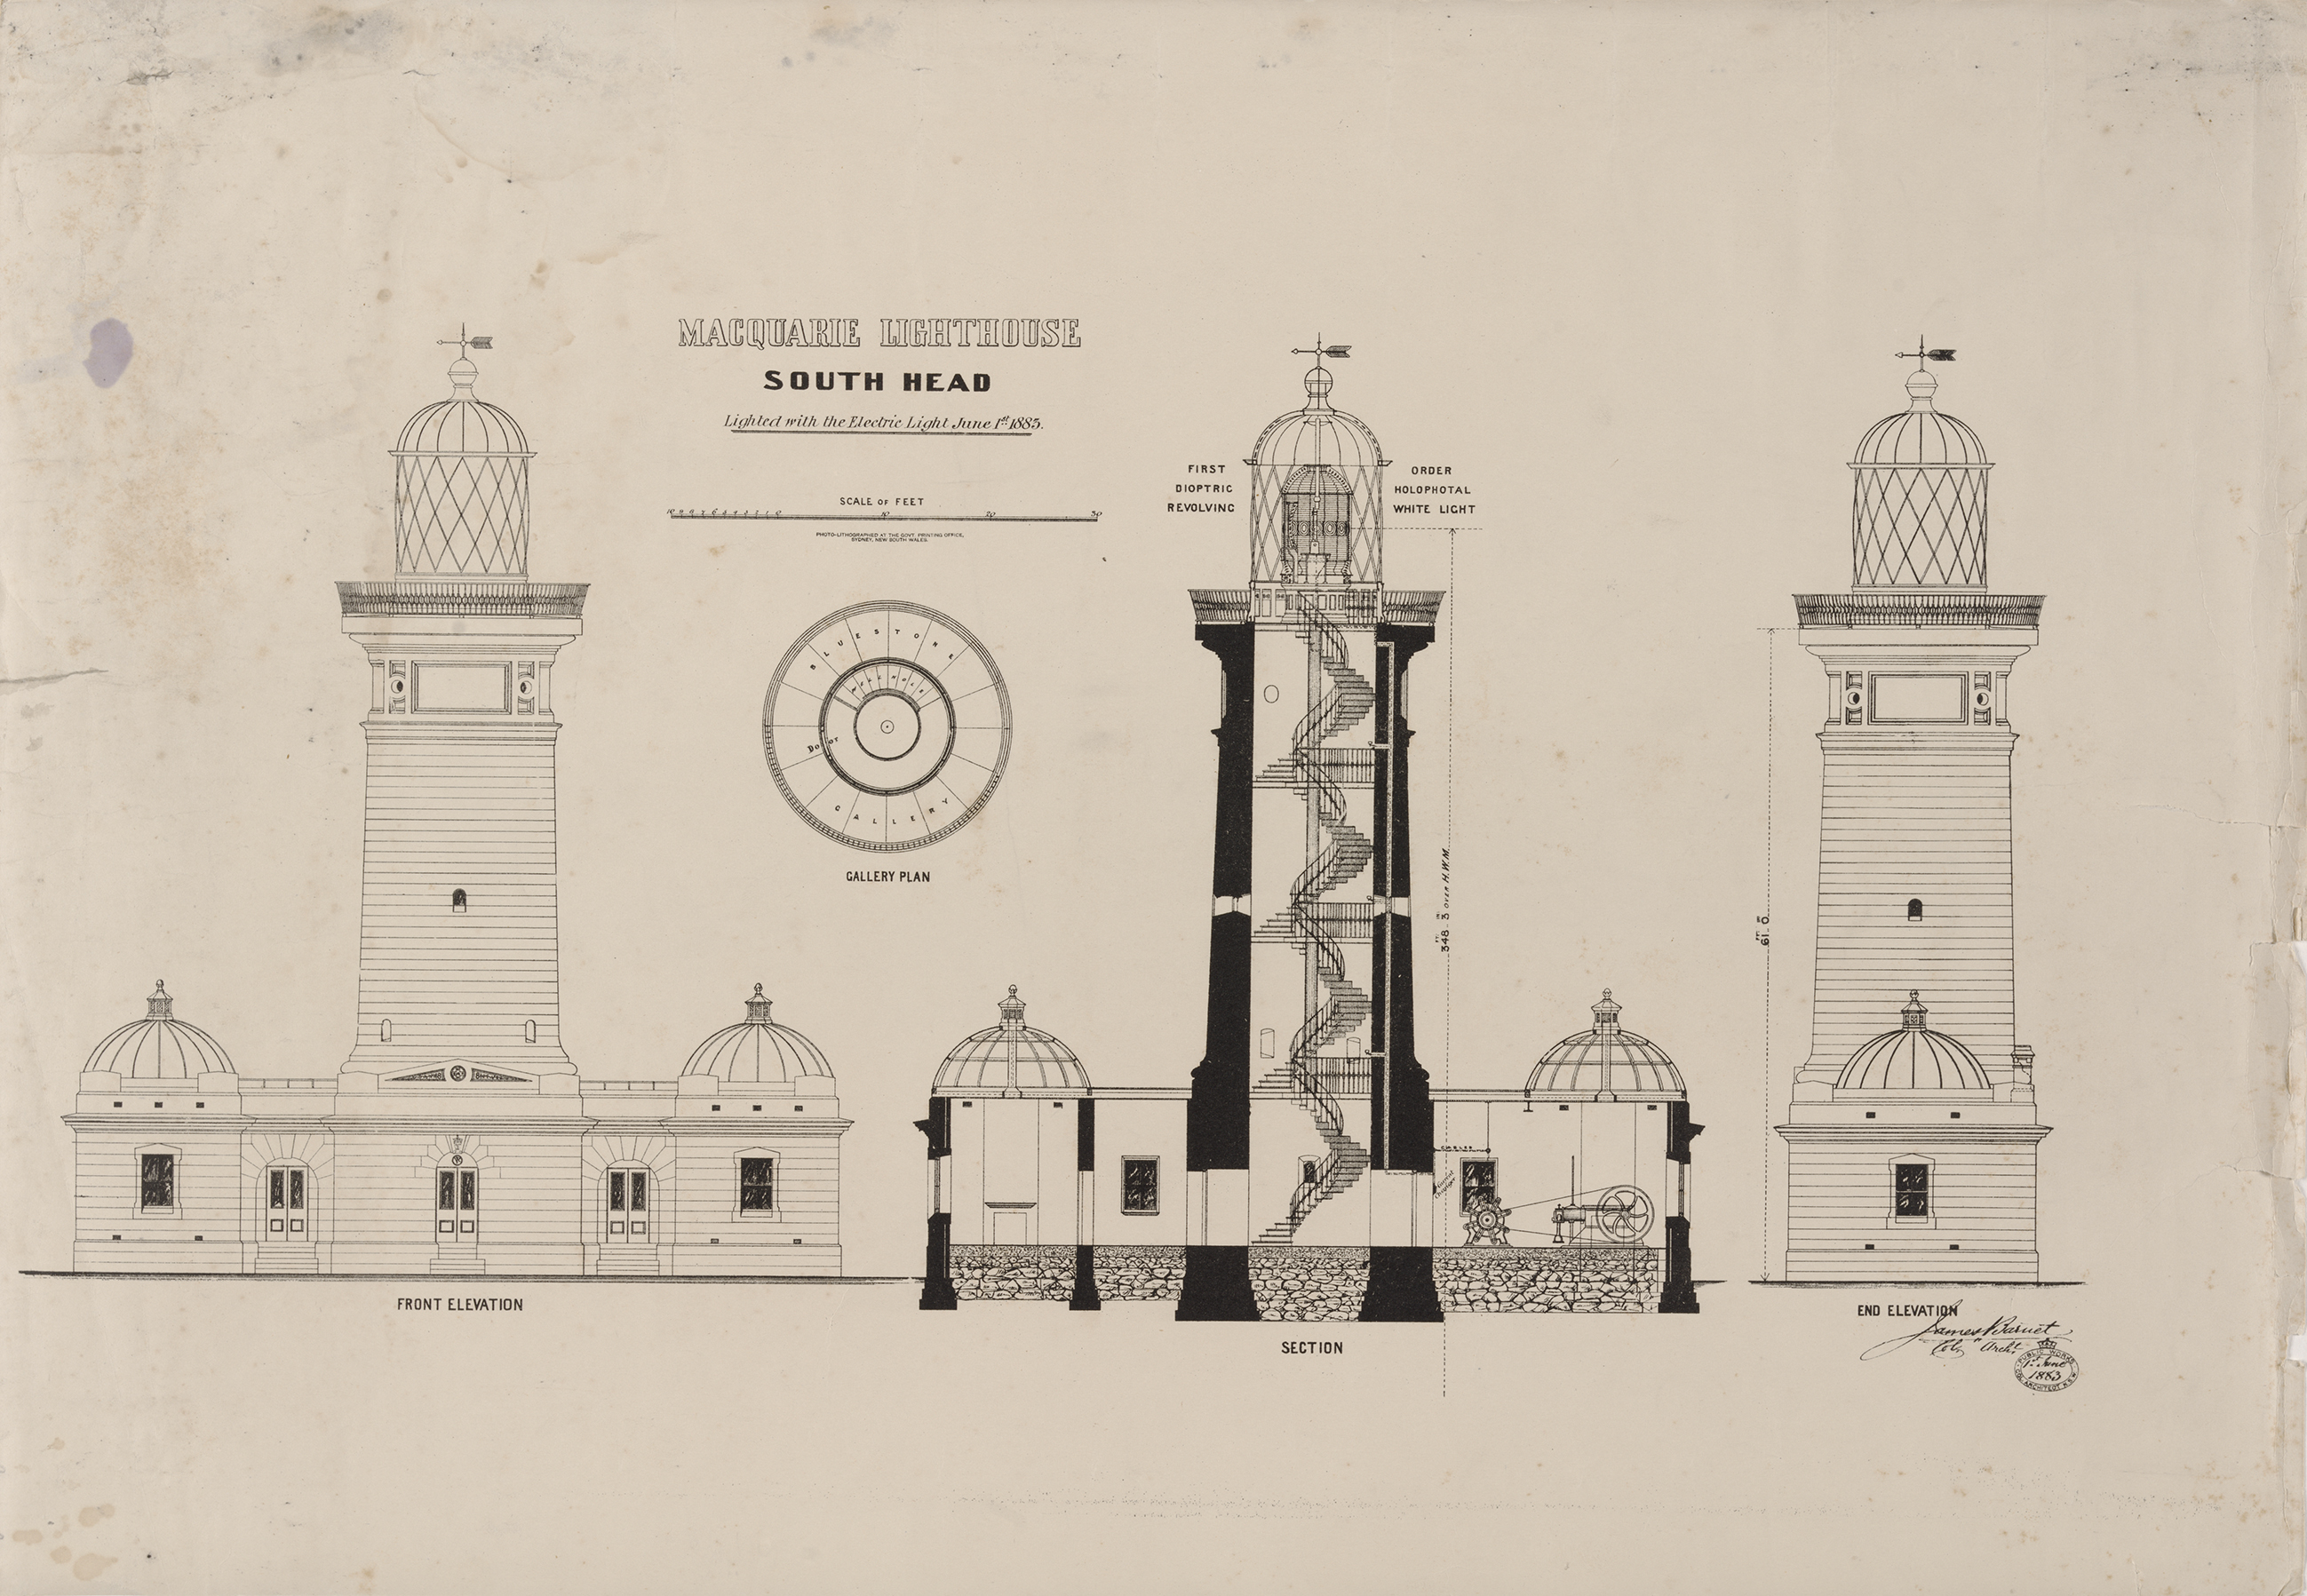 Plan section and elevation of Macquarie Lighthouse South Head, 1885